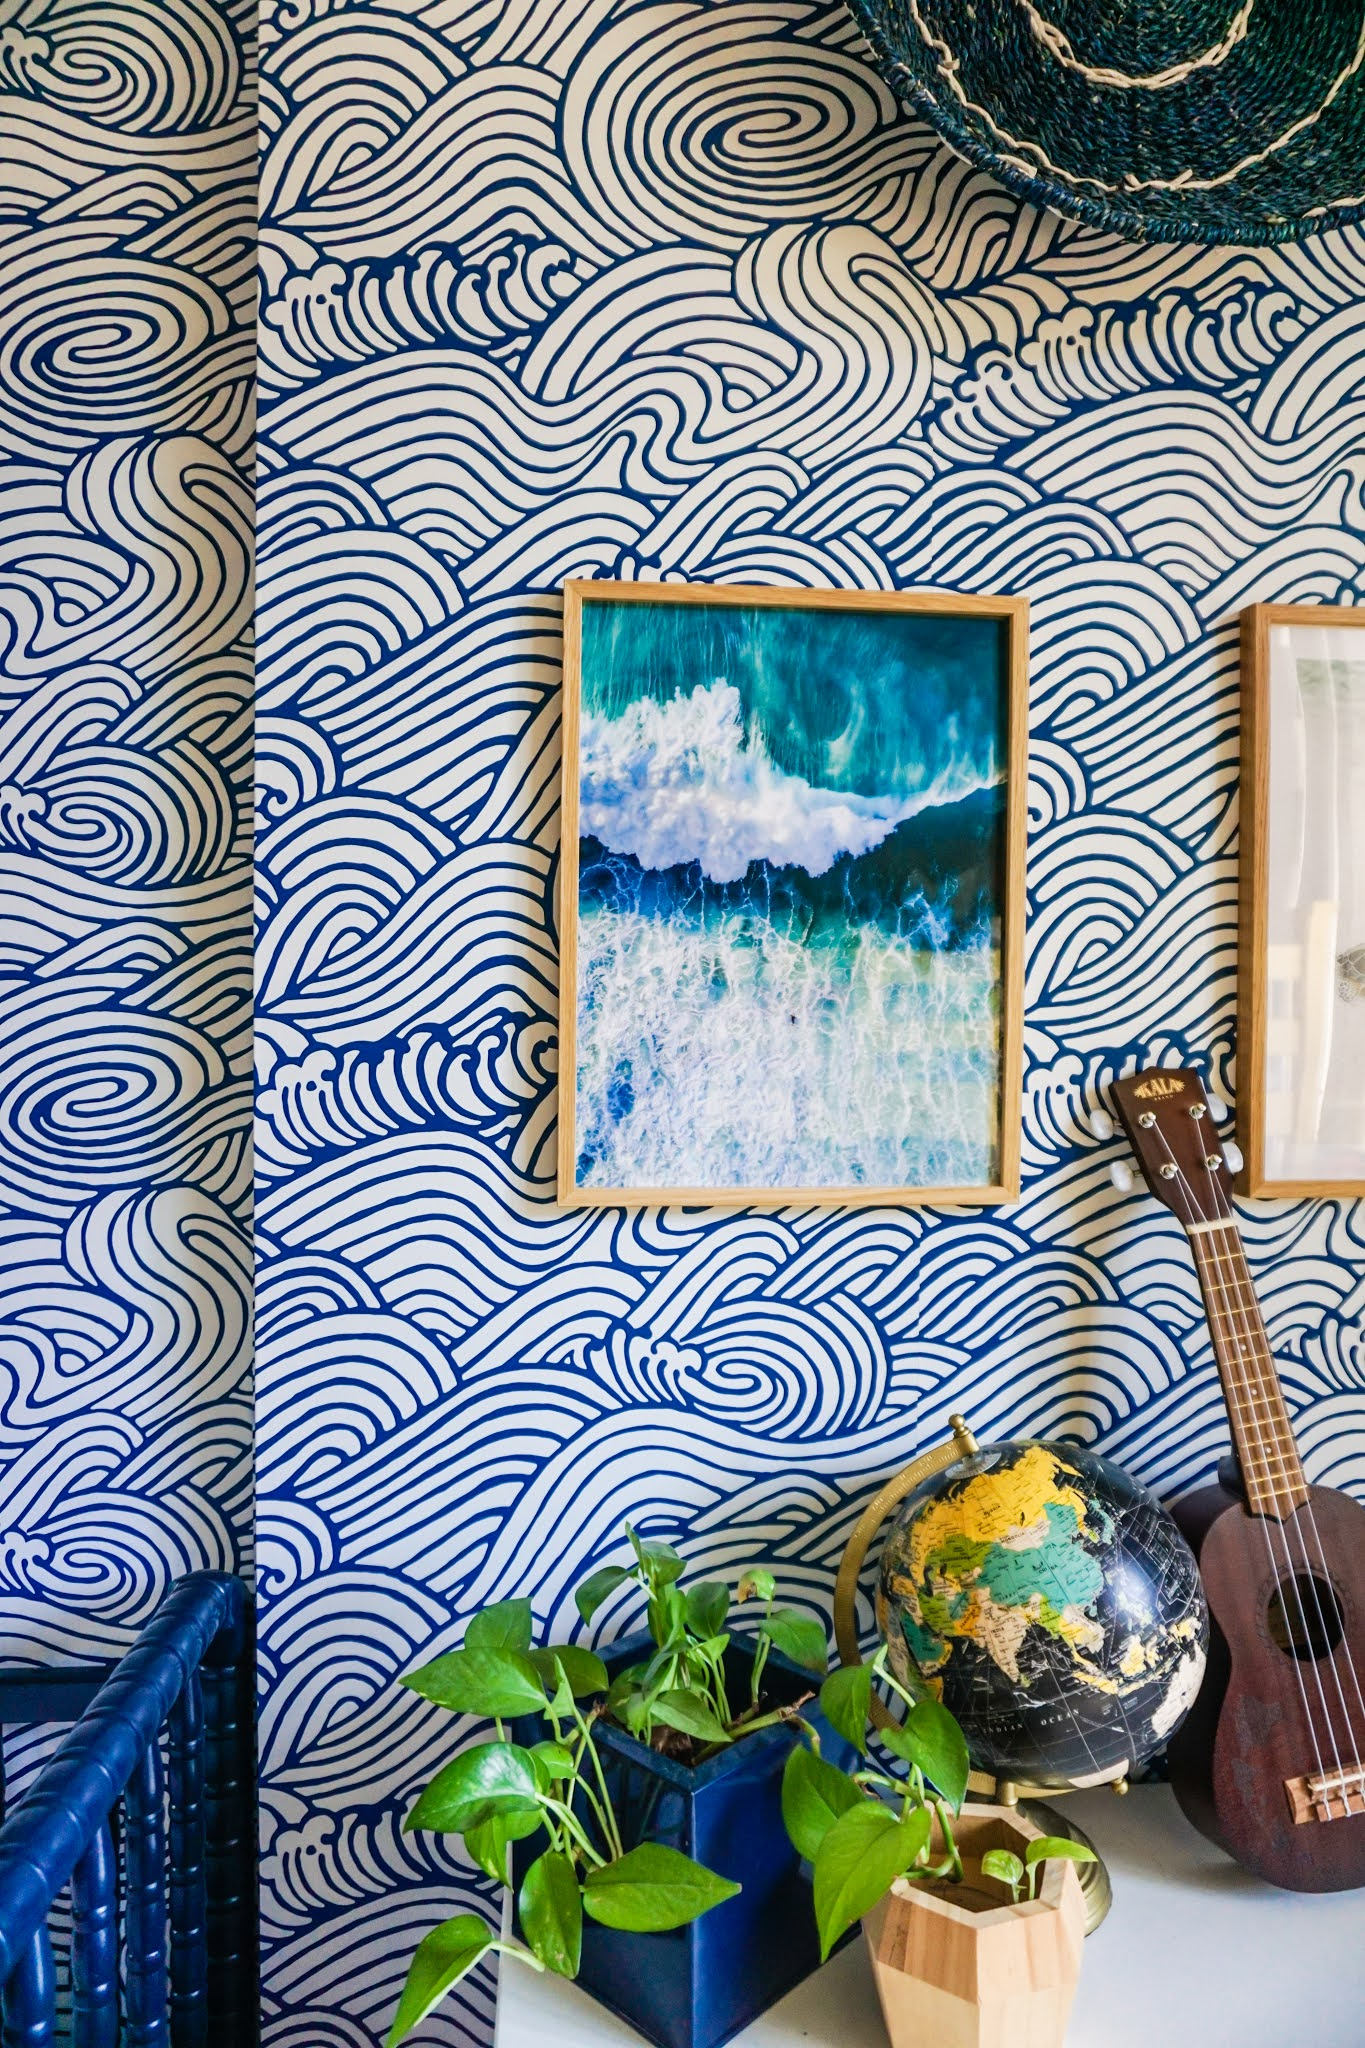 Waves wallpaper // wallpaper for kids room // removable wallpaper for kids room // calming wallpaper // kids bedroom // poster store prints and frames // waves art ideas for kids room // gallery wall ideas for kids room // blue and white boys room // eclectic kids room ideas // boho kids room ideas // wallpops saybrook wallpaper // retro bedroom ideas // cute kids room ideas // cute kids room decor // boho kids room decor // surf inspired kids room // California inspired kids room // Hawaii inspired kids room